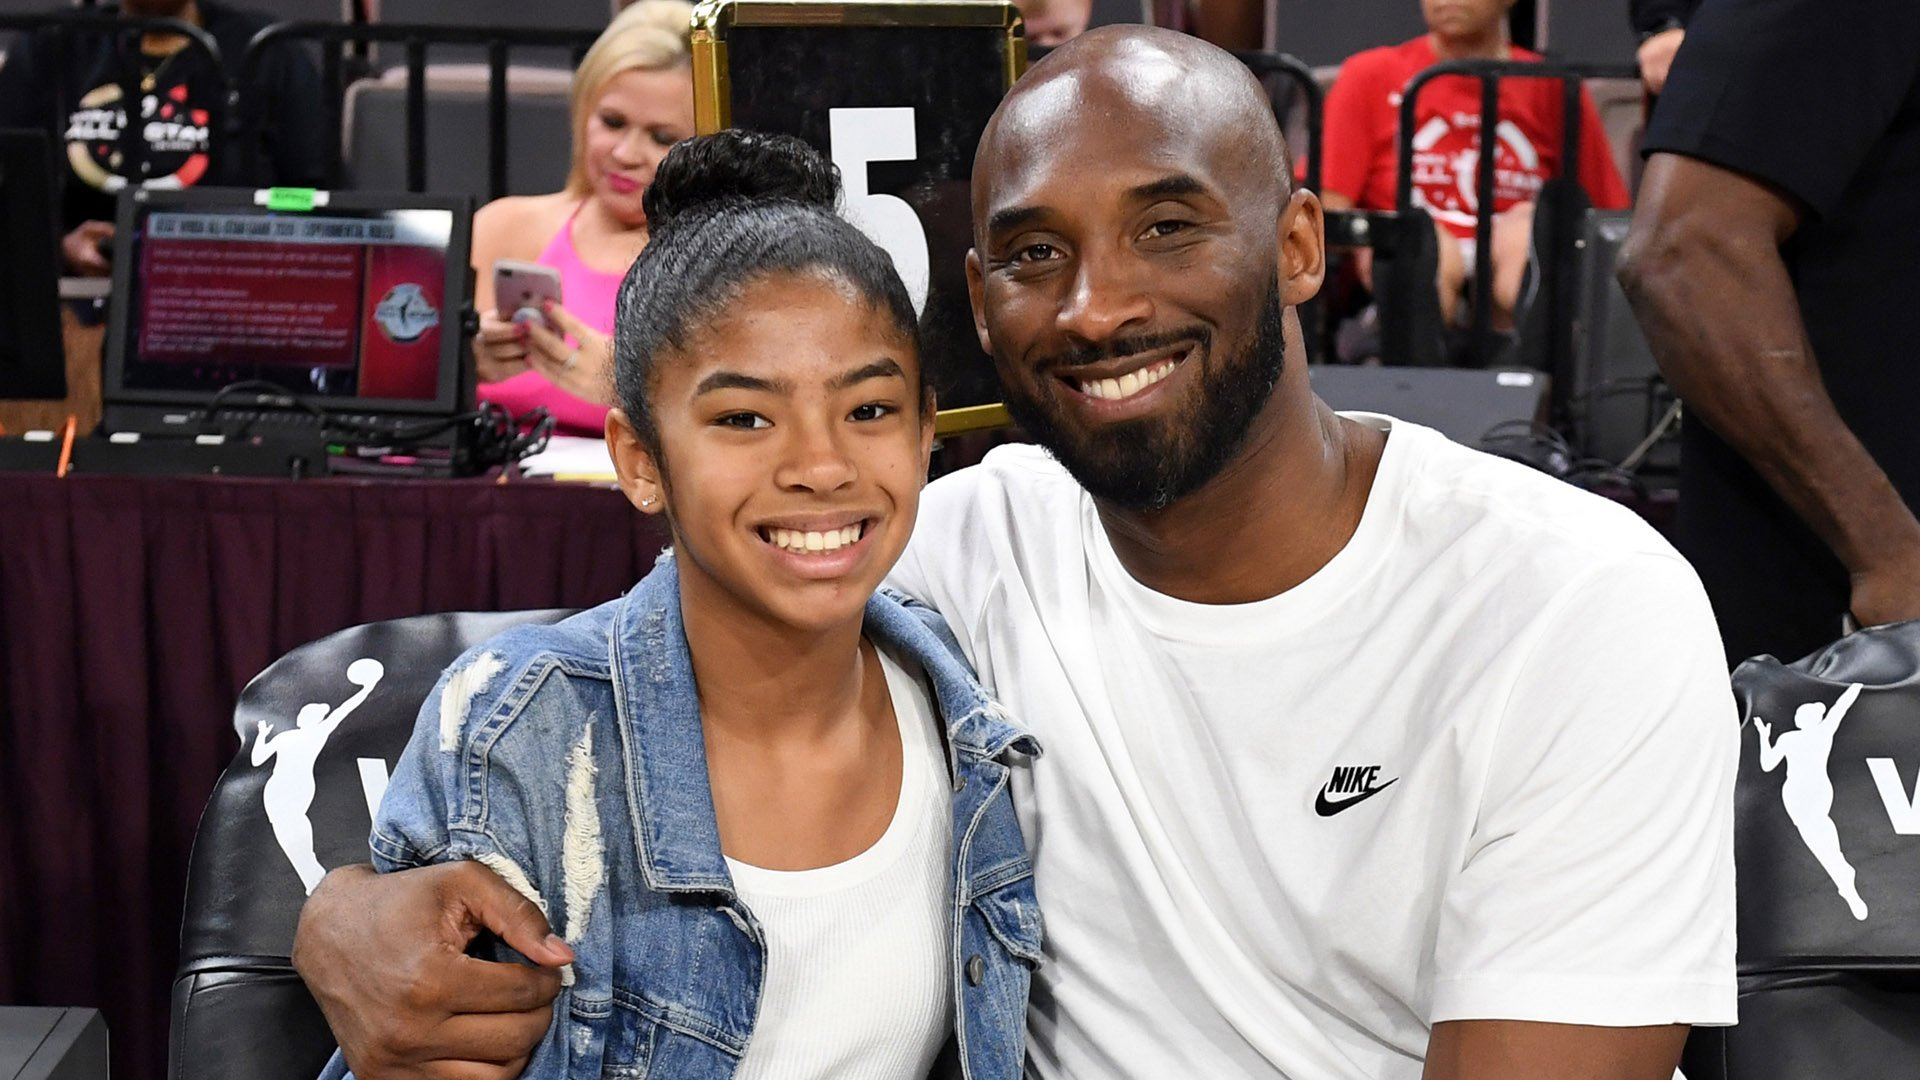 Kobe Bryant And Gianna Bryant Helicopter Safety Act Would Require Terrain Alarms On Choppers Ktla